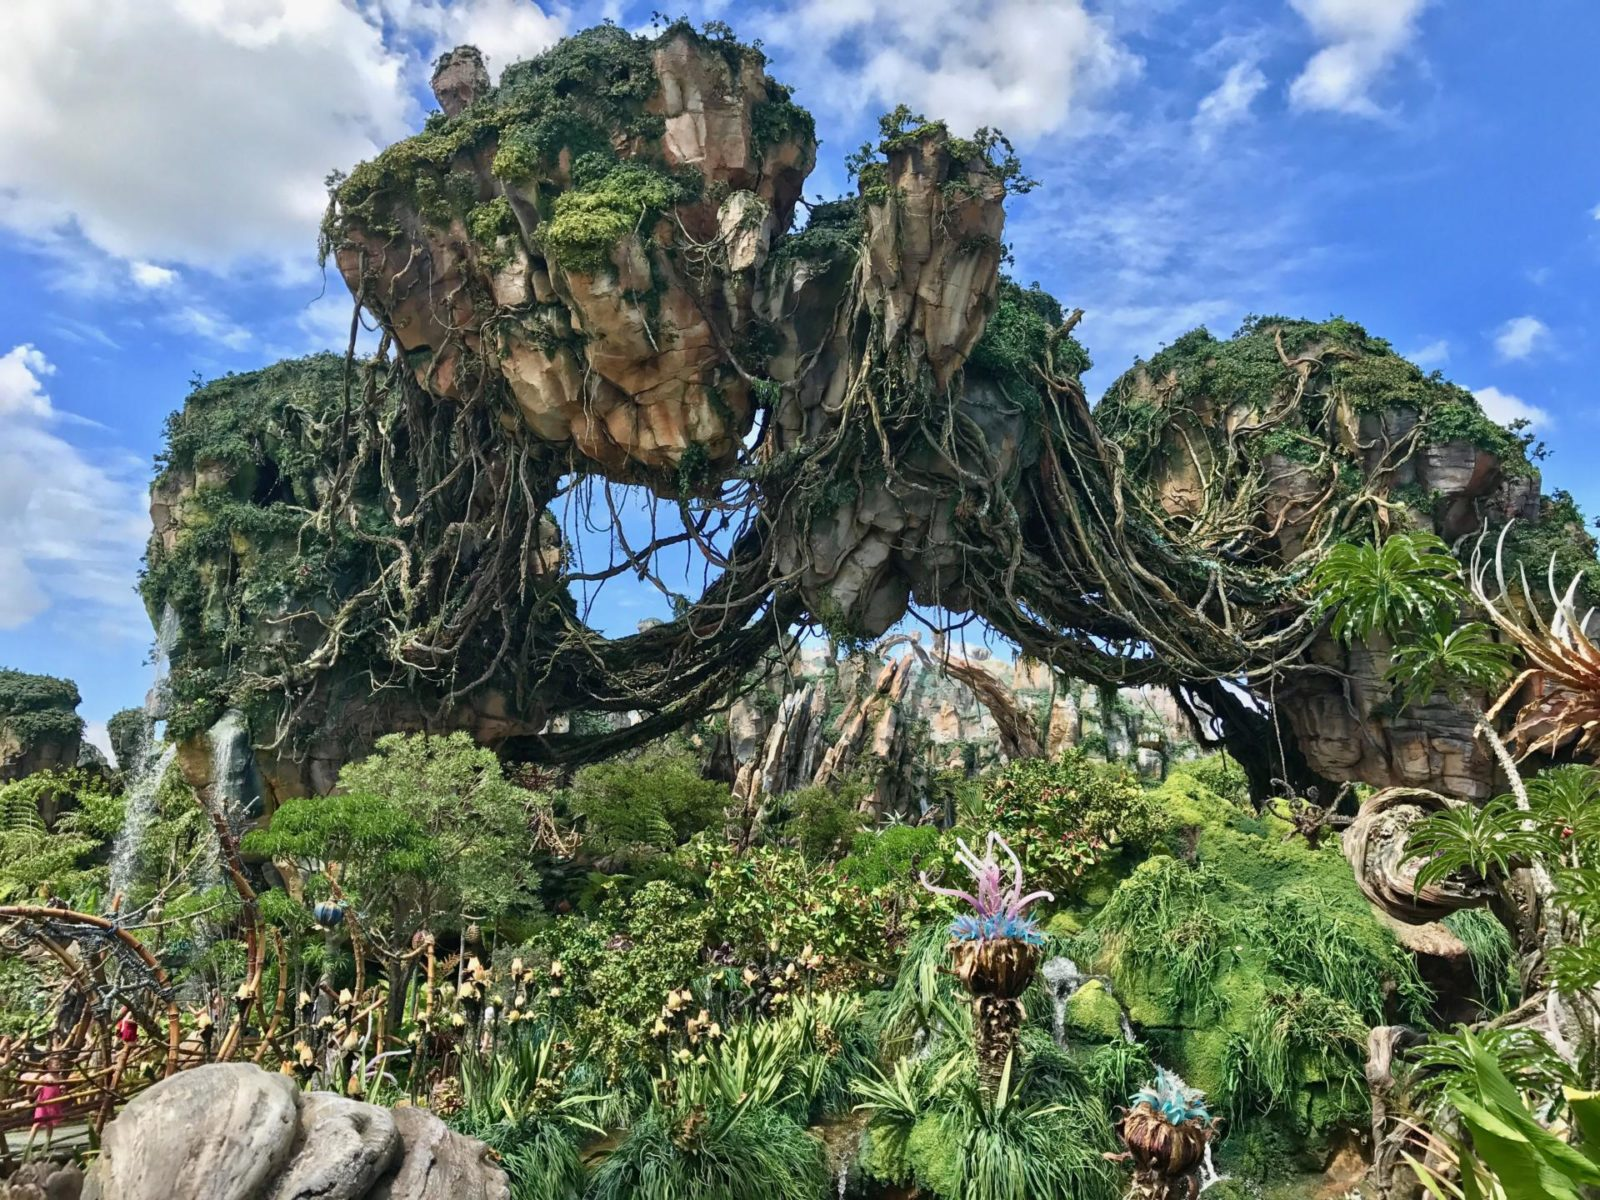 Exploring Disney's Pandora – The World of Avatar